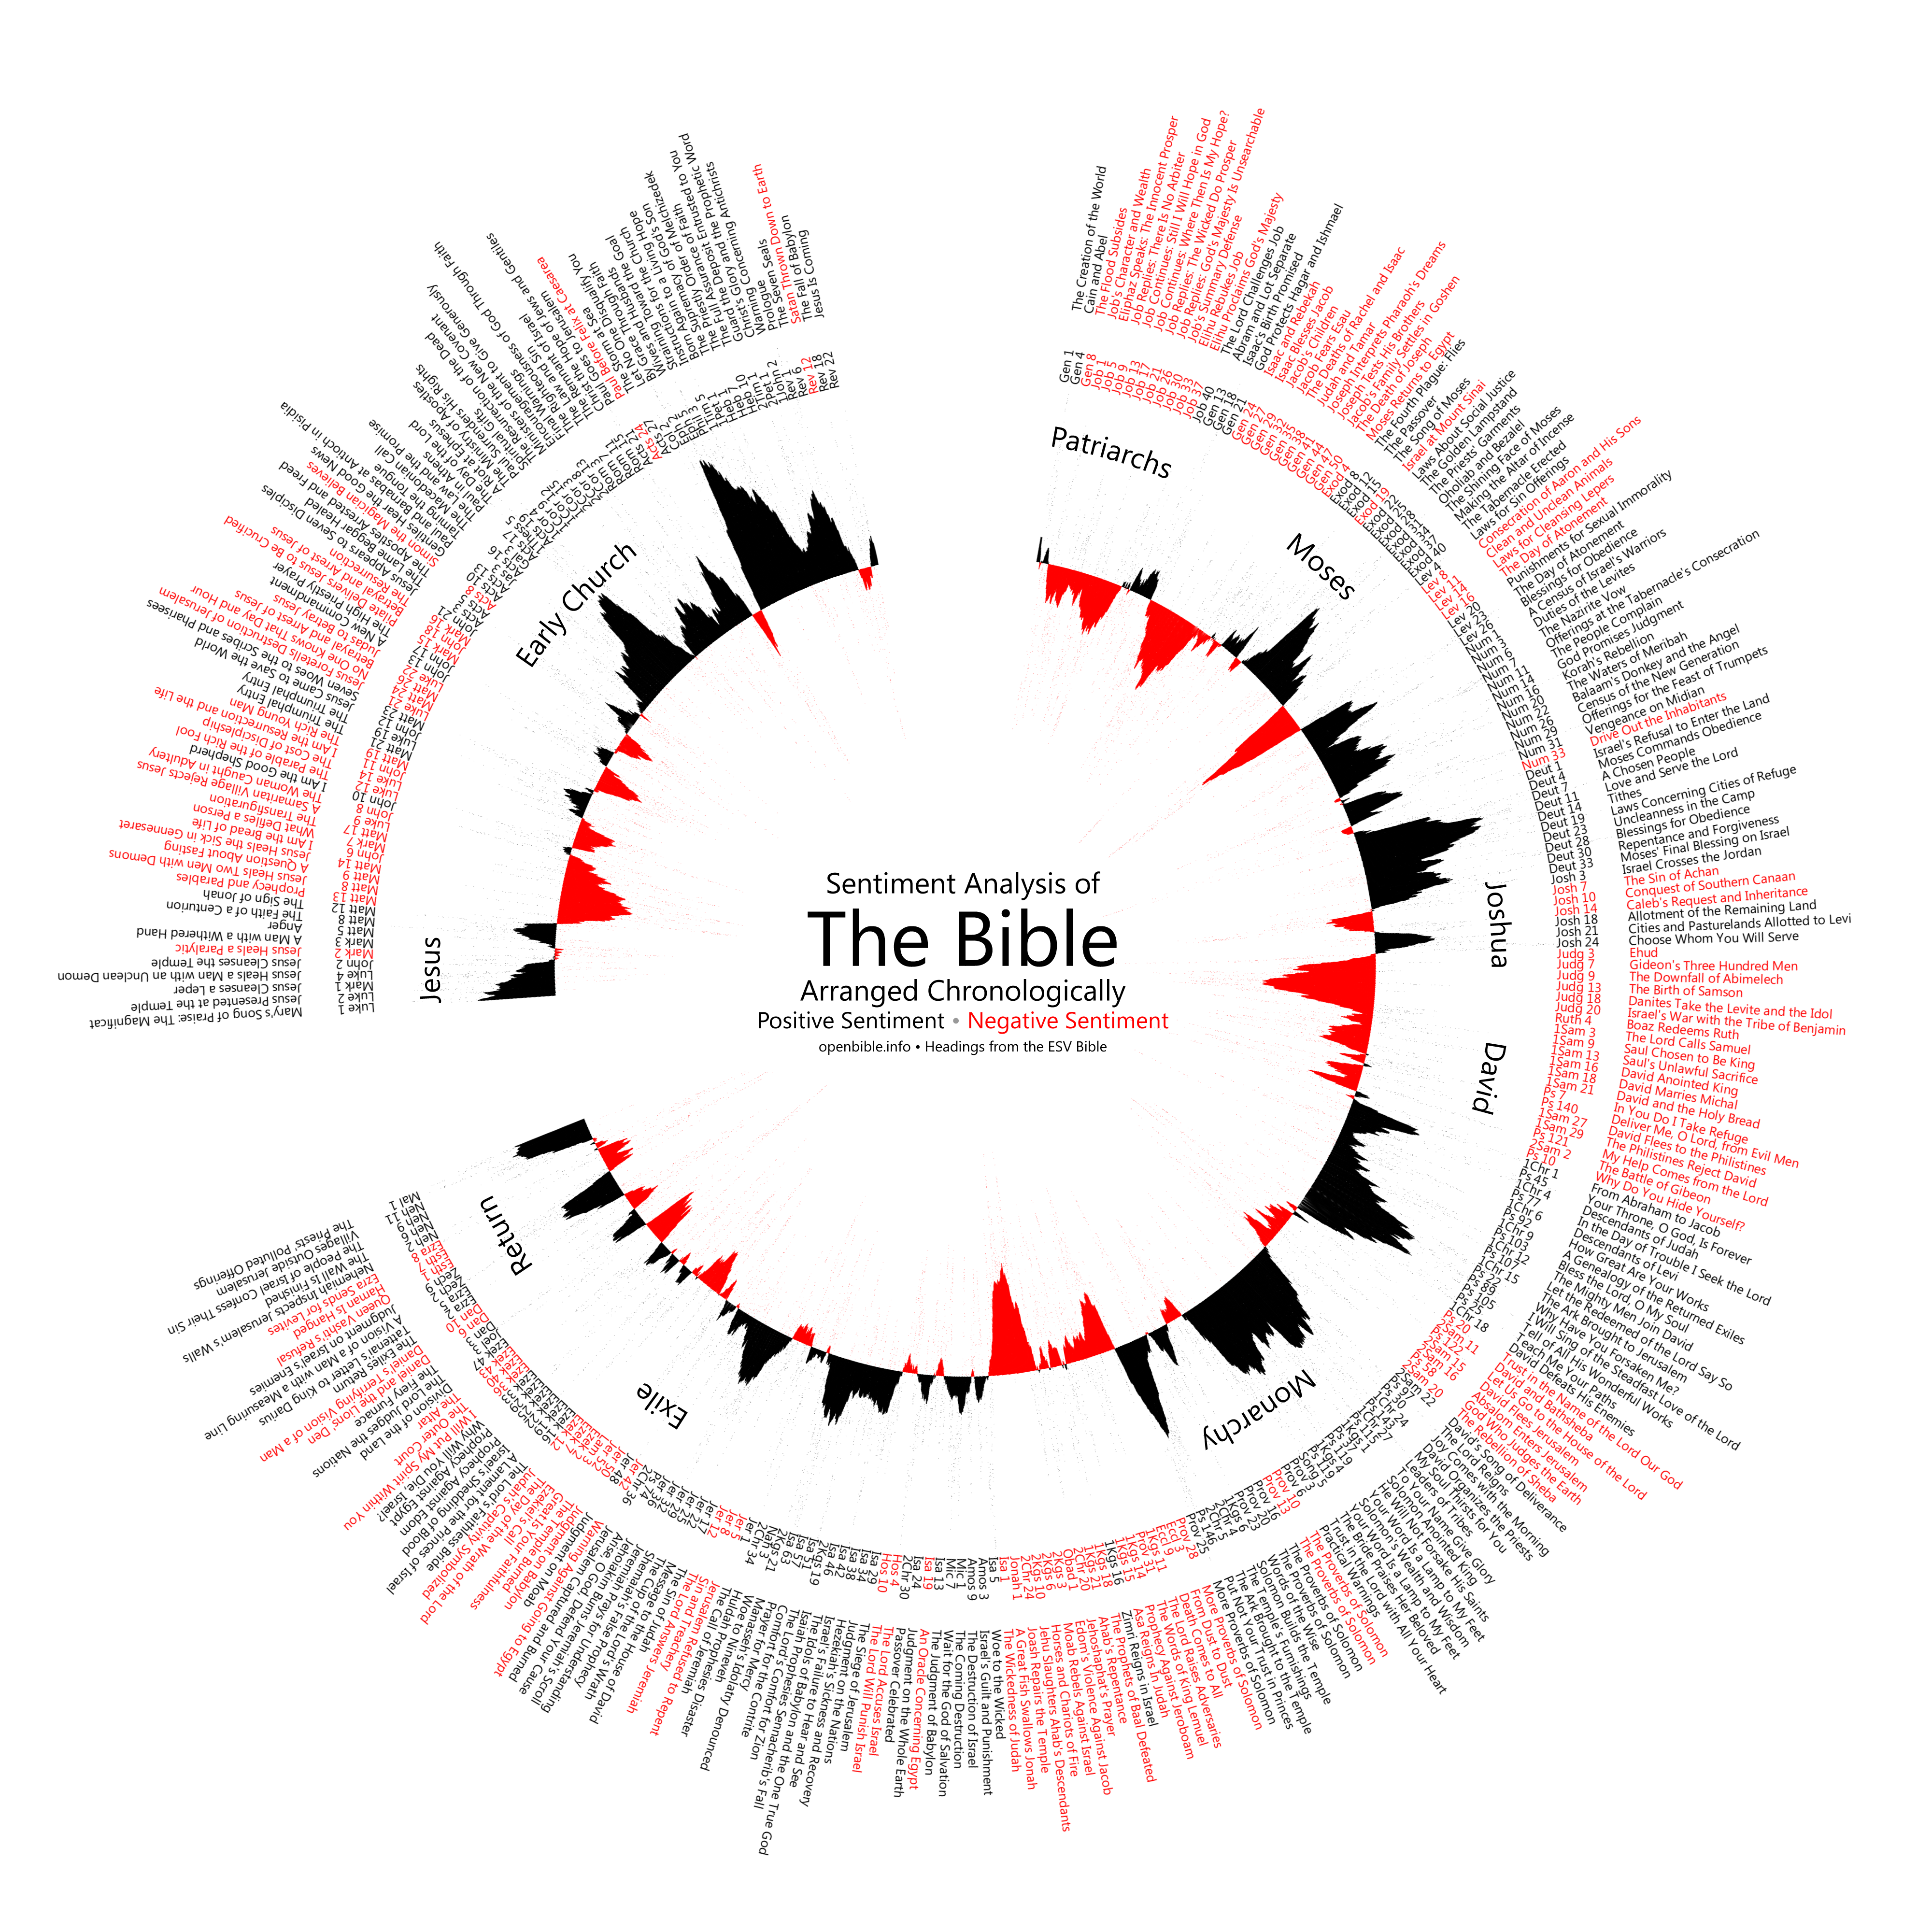 the narrative of the biblical text quantified as if it is positive or negative